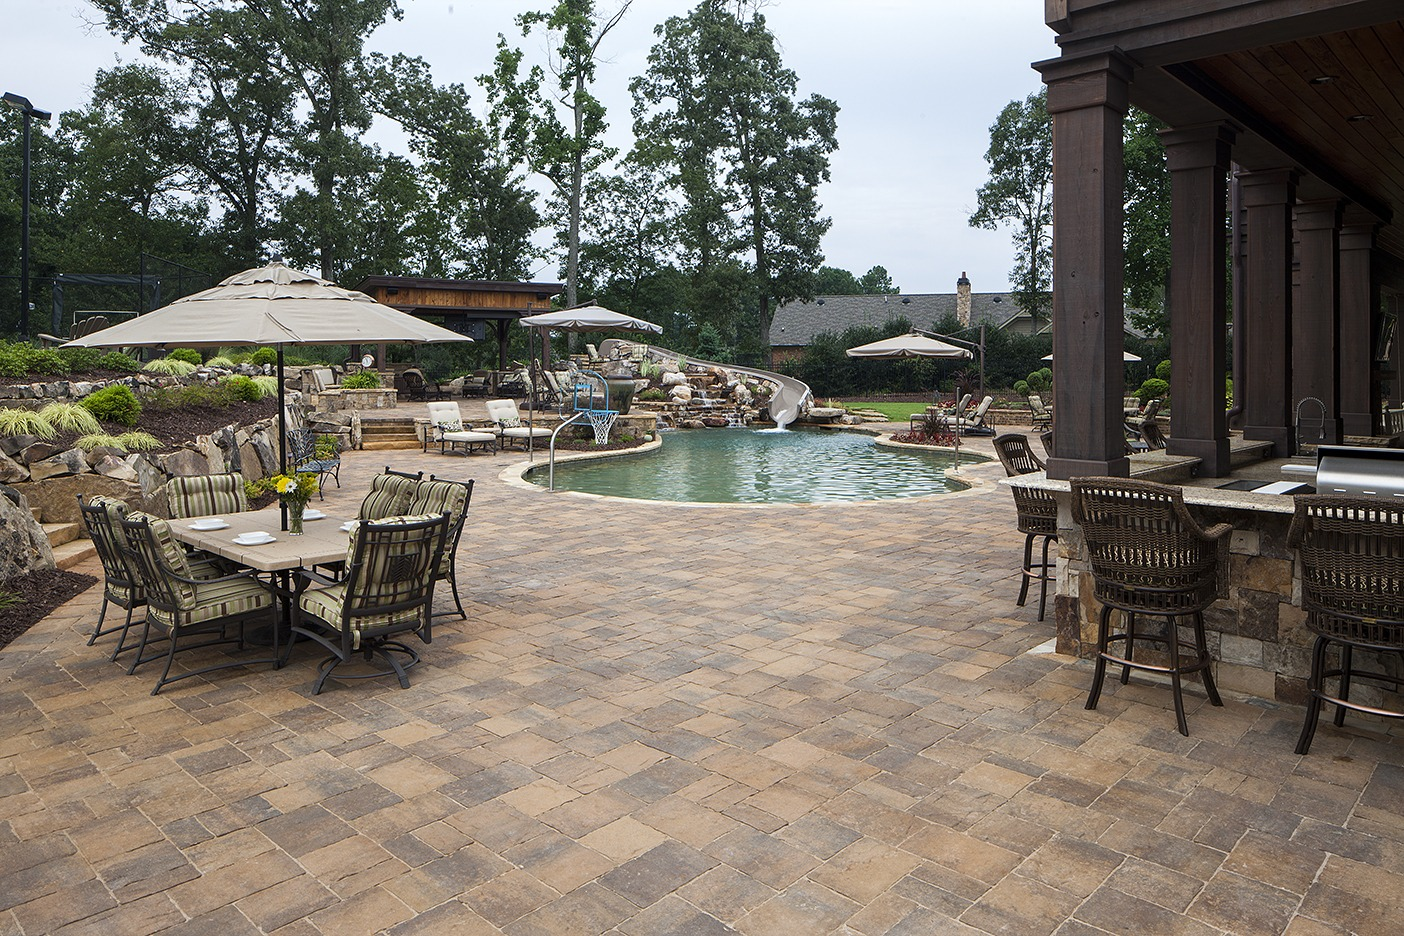 Above Ground Pool Deck Paver Pool Deck Materials Guide Top Pool Decking Options  Installit